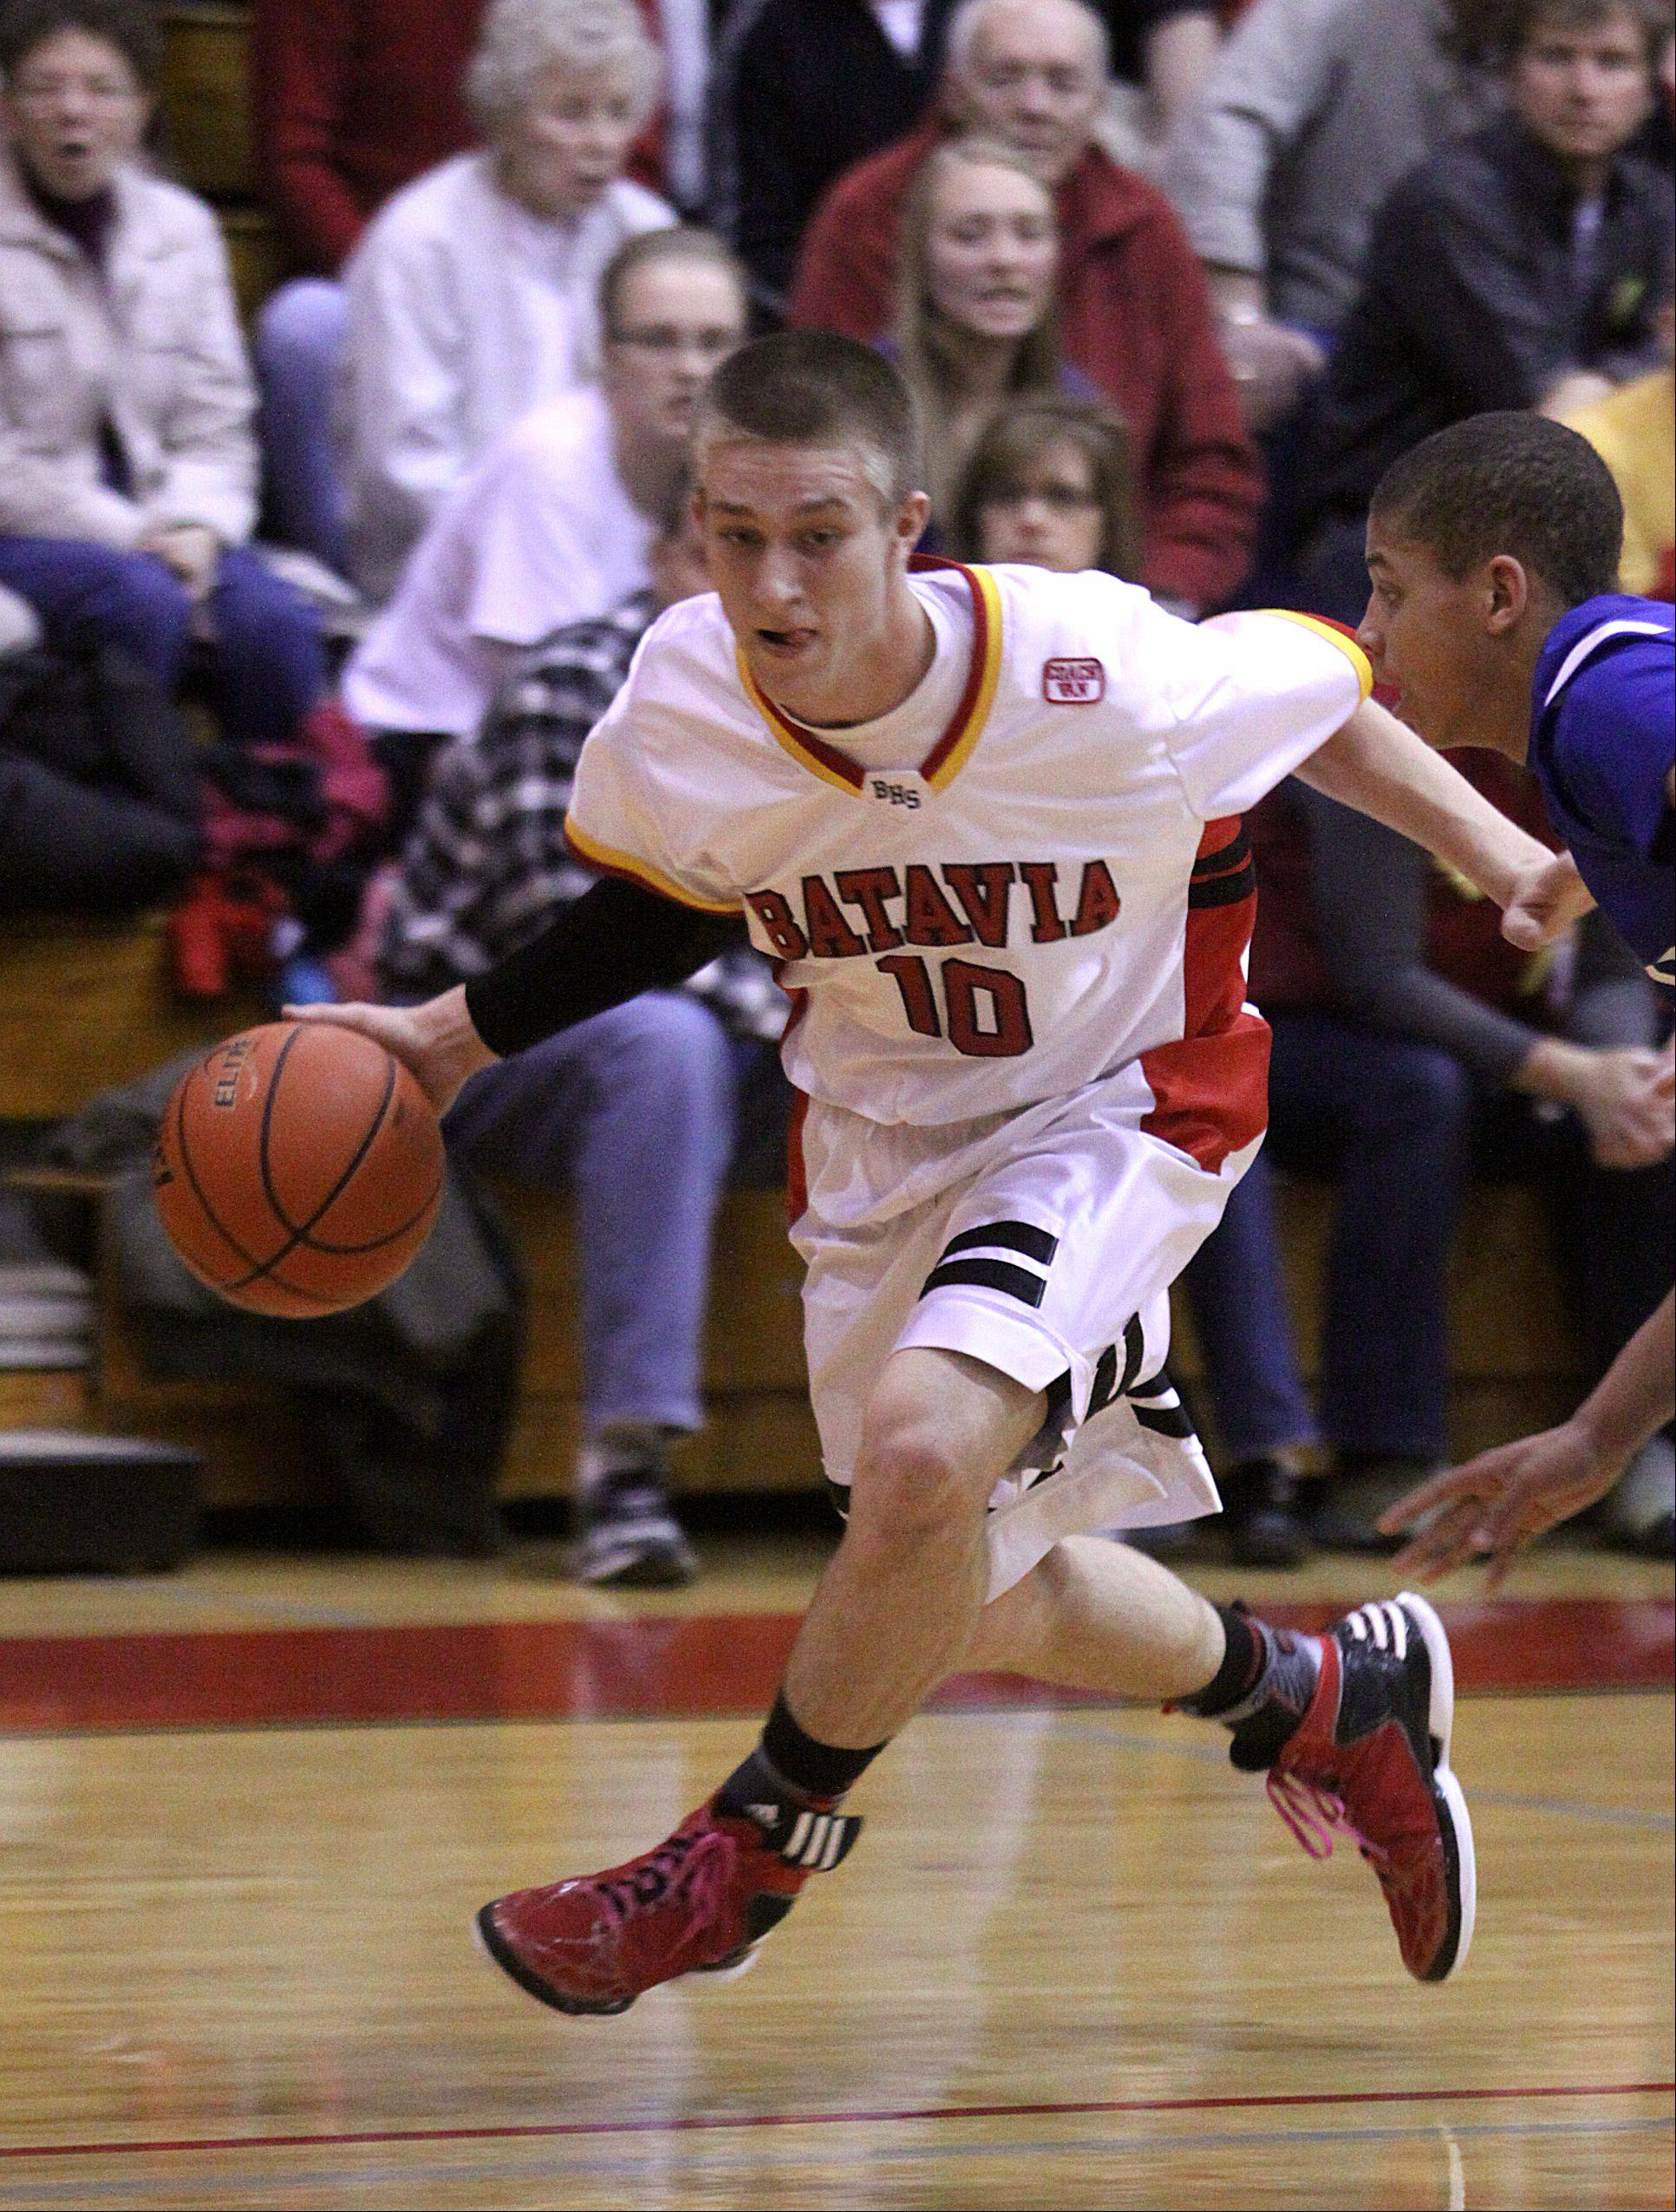 Batavia's Mike Rueffer moves the ball against Larkin during a varsity basketball game at Batavia on Thursday night.